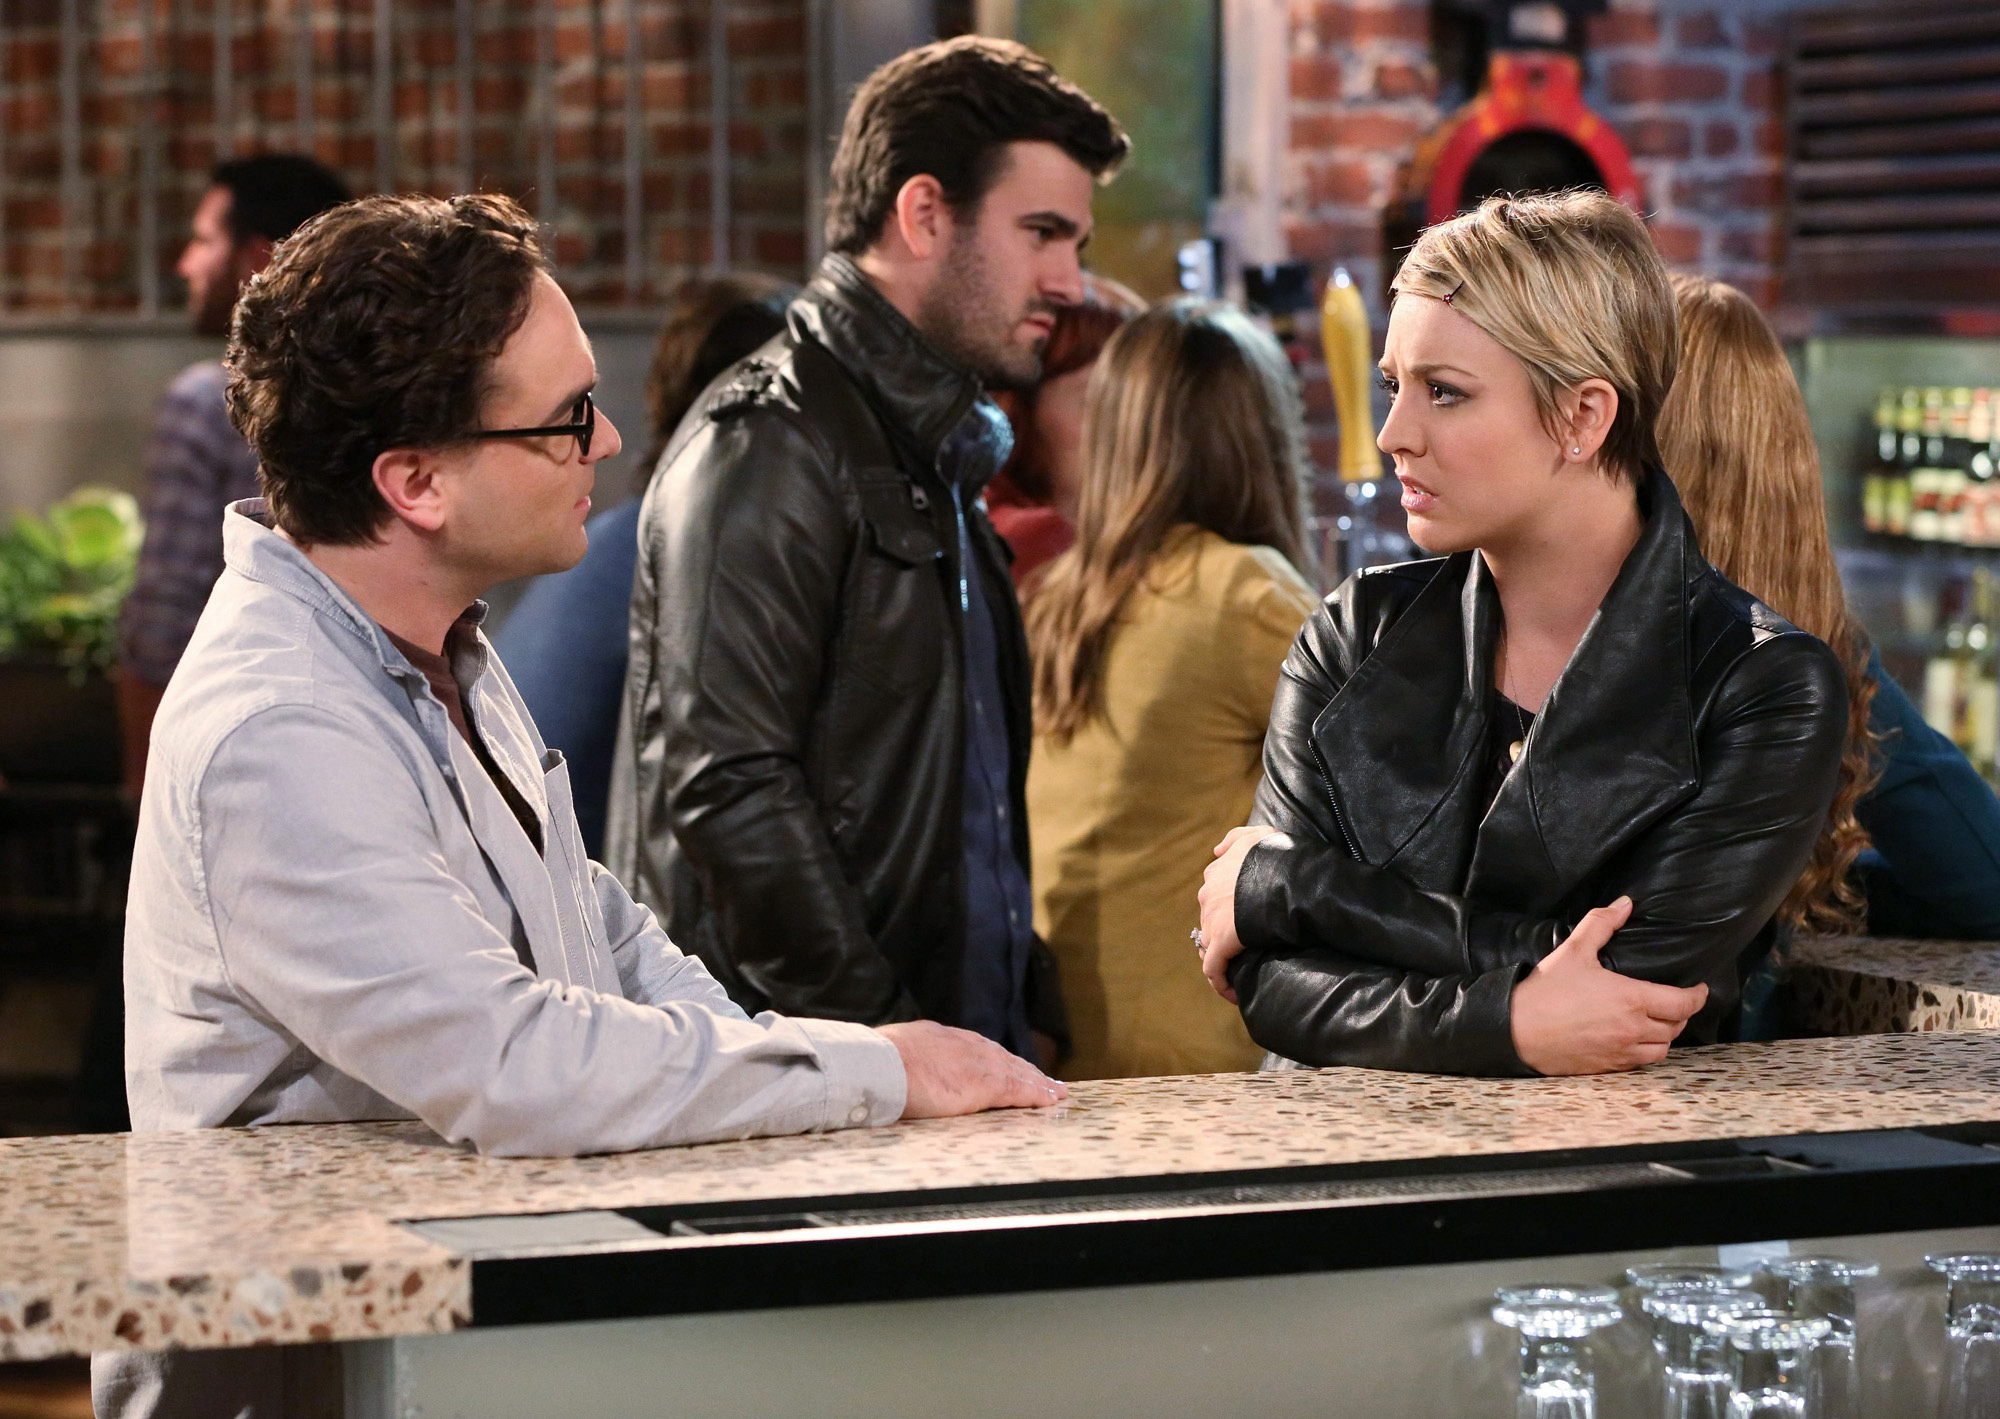 Nice - Leonard Hofstadter and Penny from The Big Bang Theory